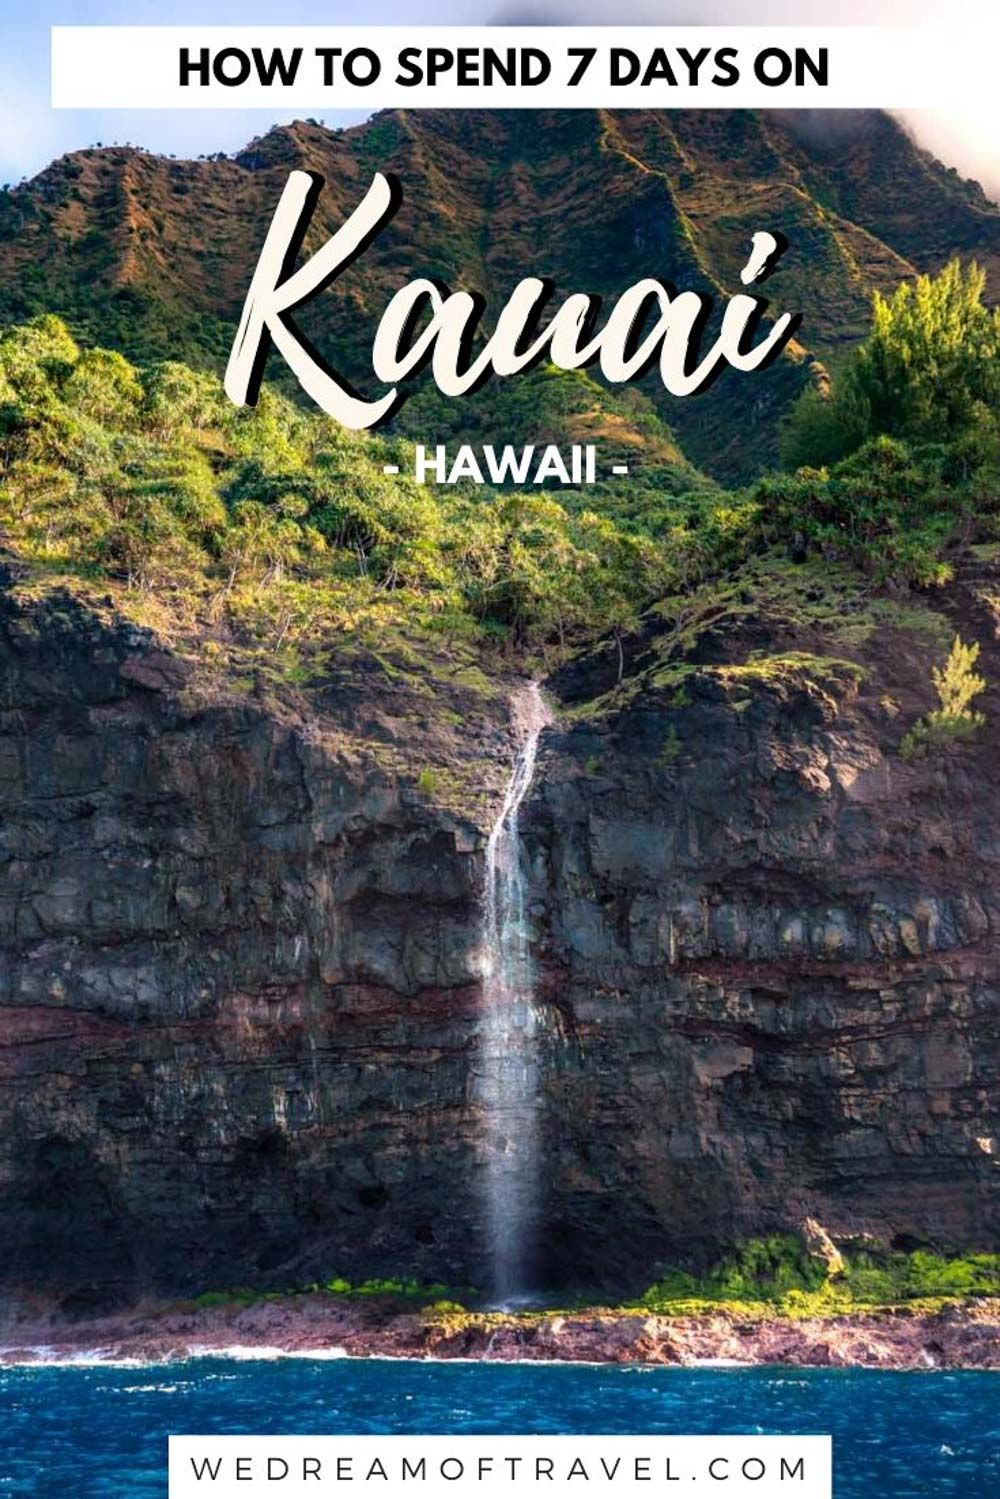 7 Day Kauai Hawaii Itinerary. Discover all the best things to do in Kauai you can't miss! Including incredible beaches, waterfalls, hikes and wildlife this island is perfect for outdoor and adventure lovers. Discover exactly how to have the best Kauai vacation. Kauai Hawaii | Kauai activities | Kauai secrets | Kauai Things To Do | Hawaii travel tips #hawaii #travel #USA #kauai